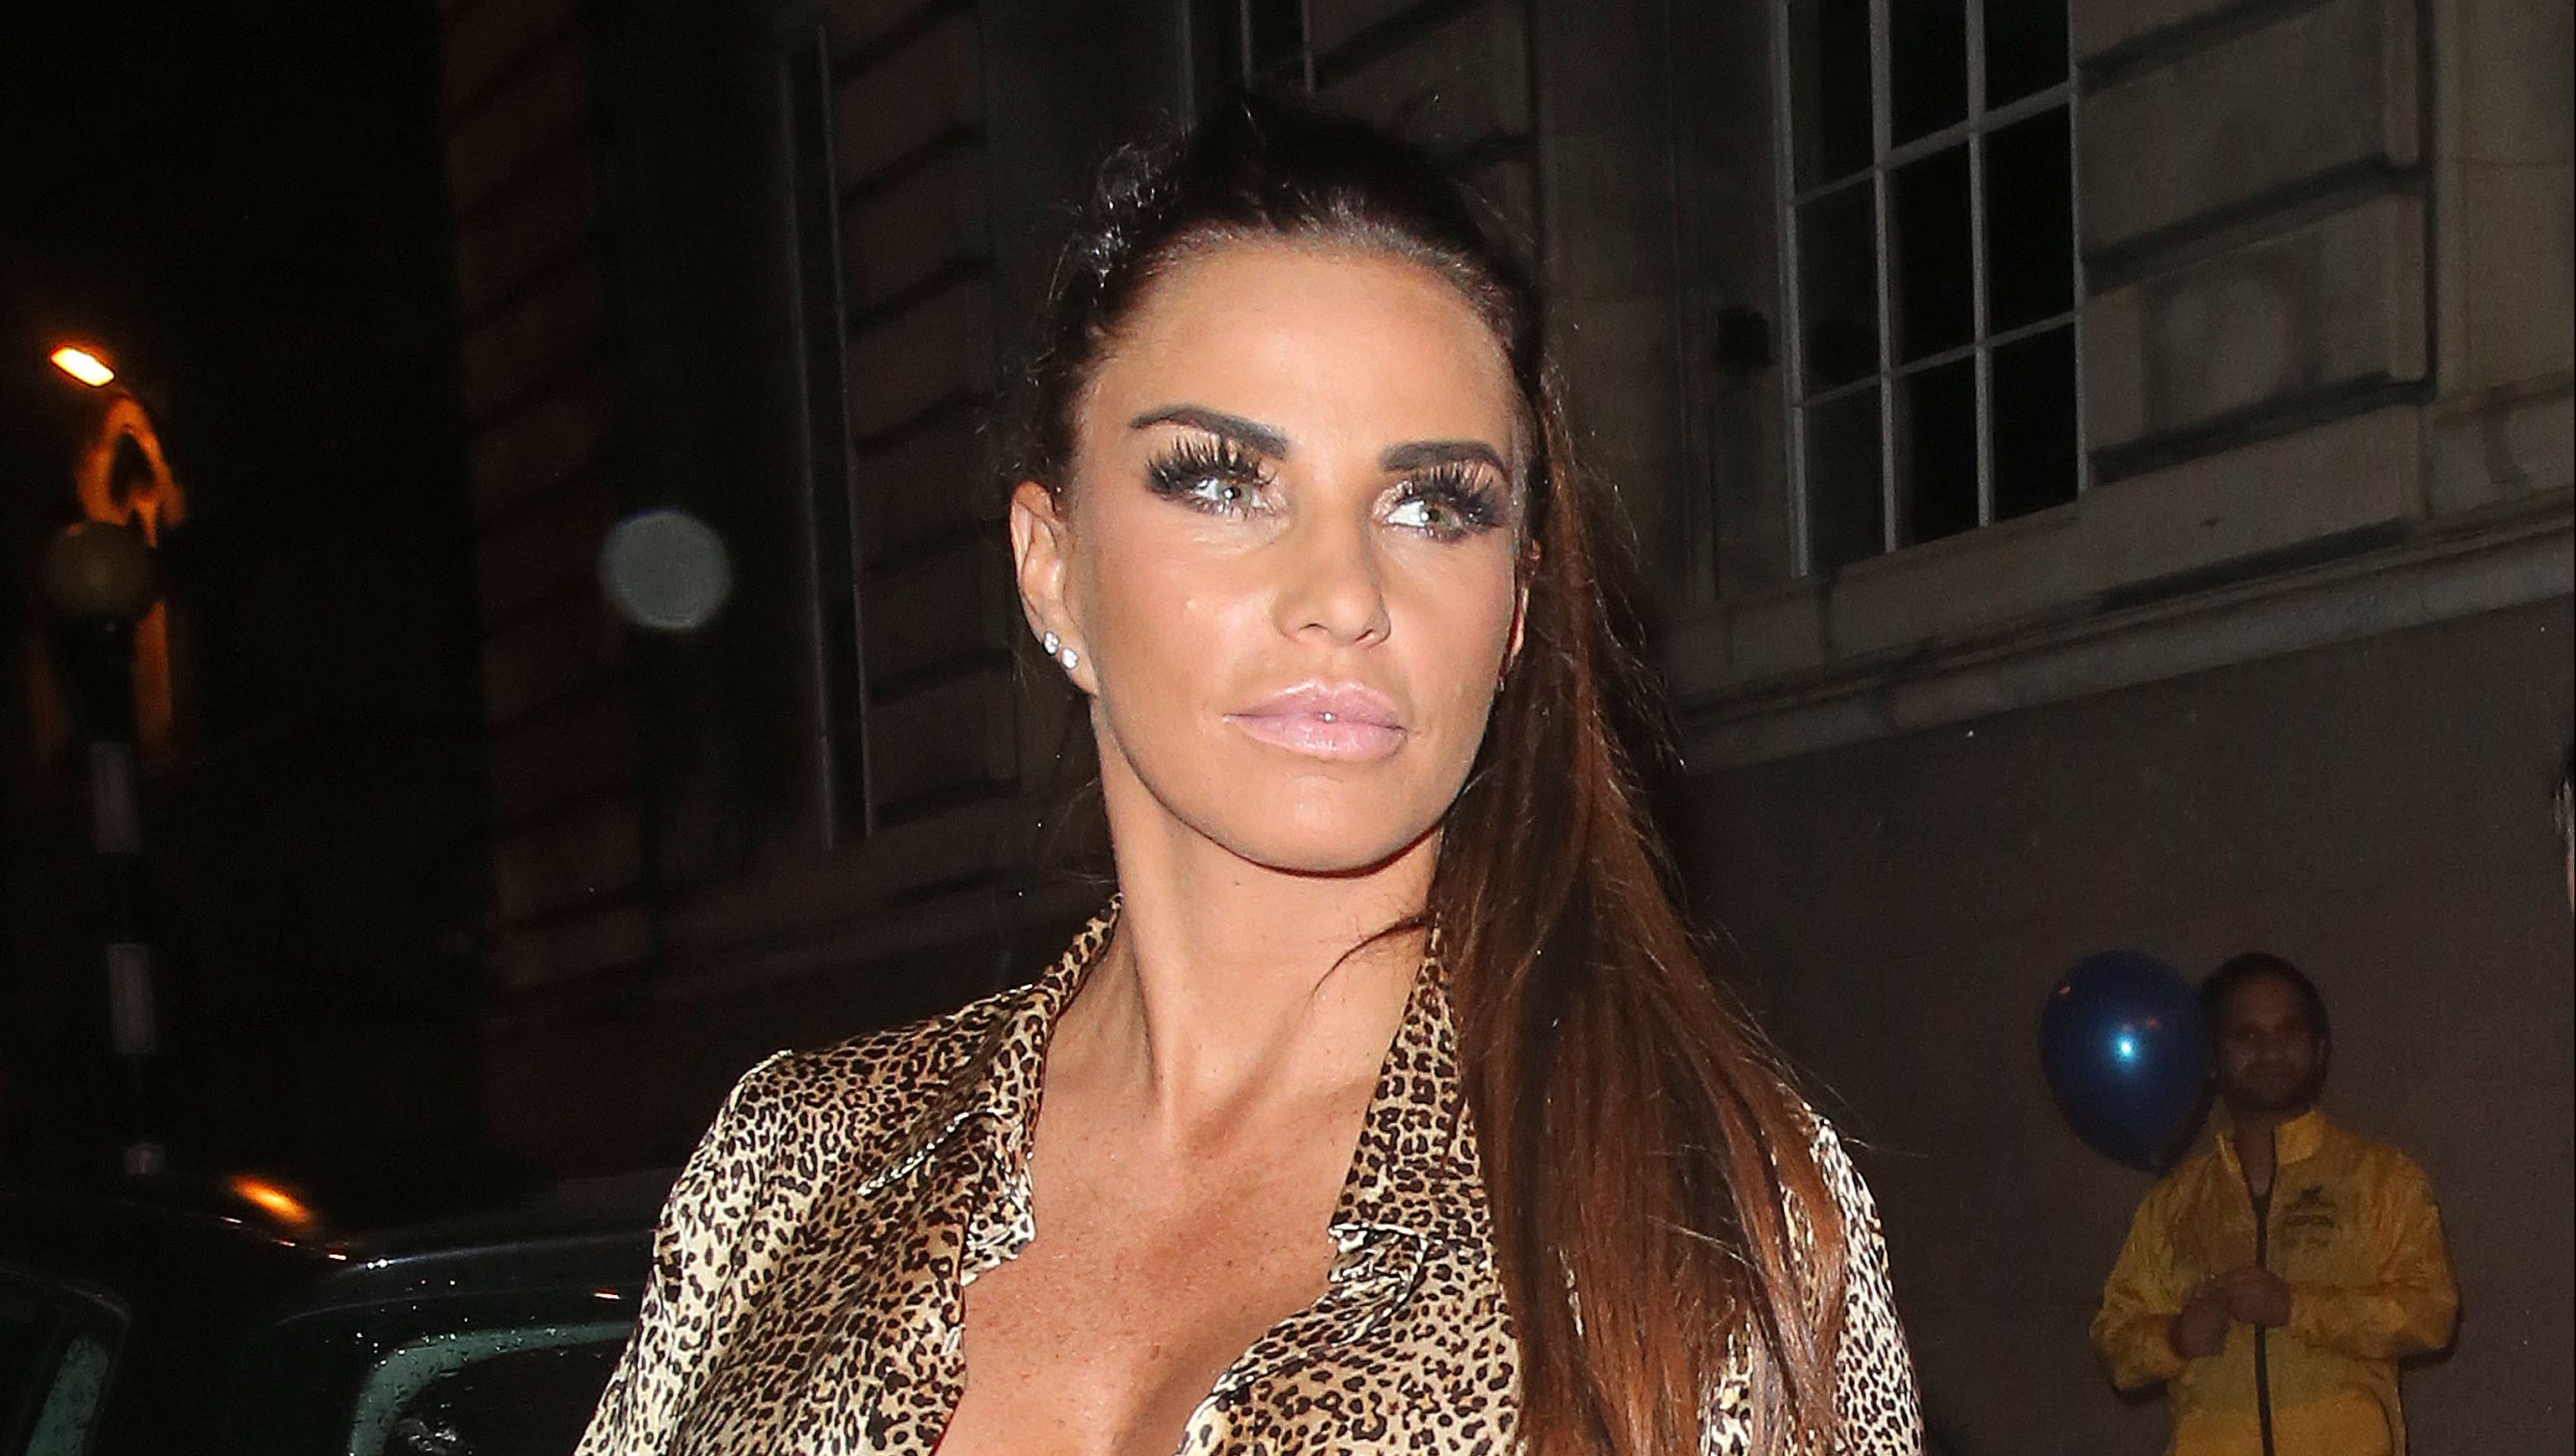 Katie Price admits fears for eldest son Harvey